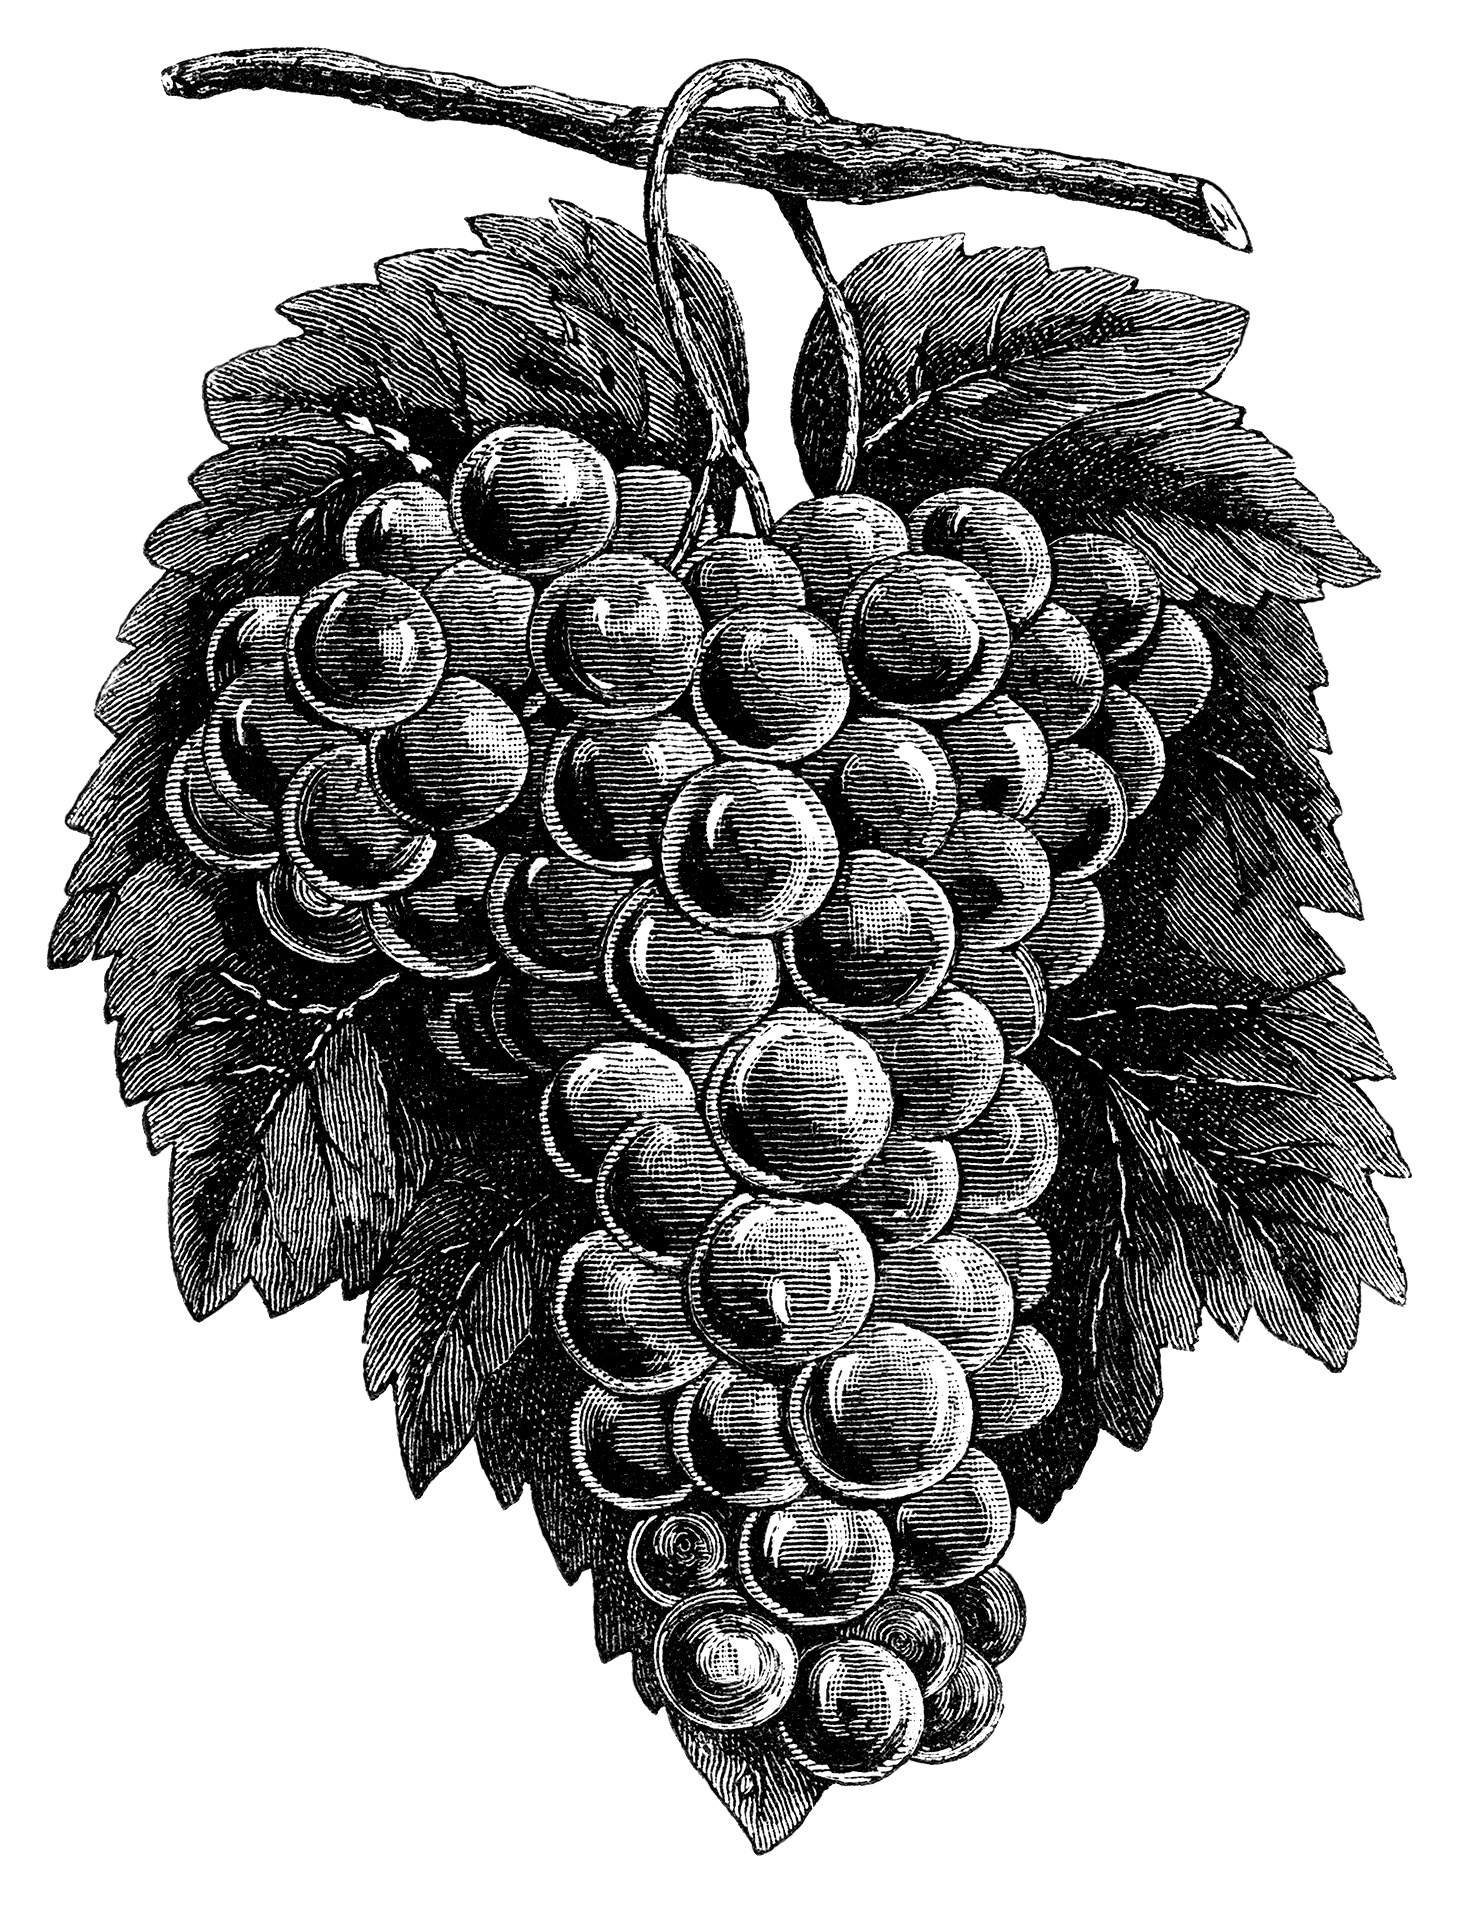 cluster grapes clipart, black and white graphics, vintage food clip art, printable fruit image, grapes branch garden illustration